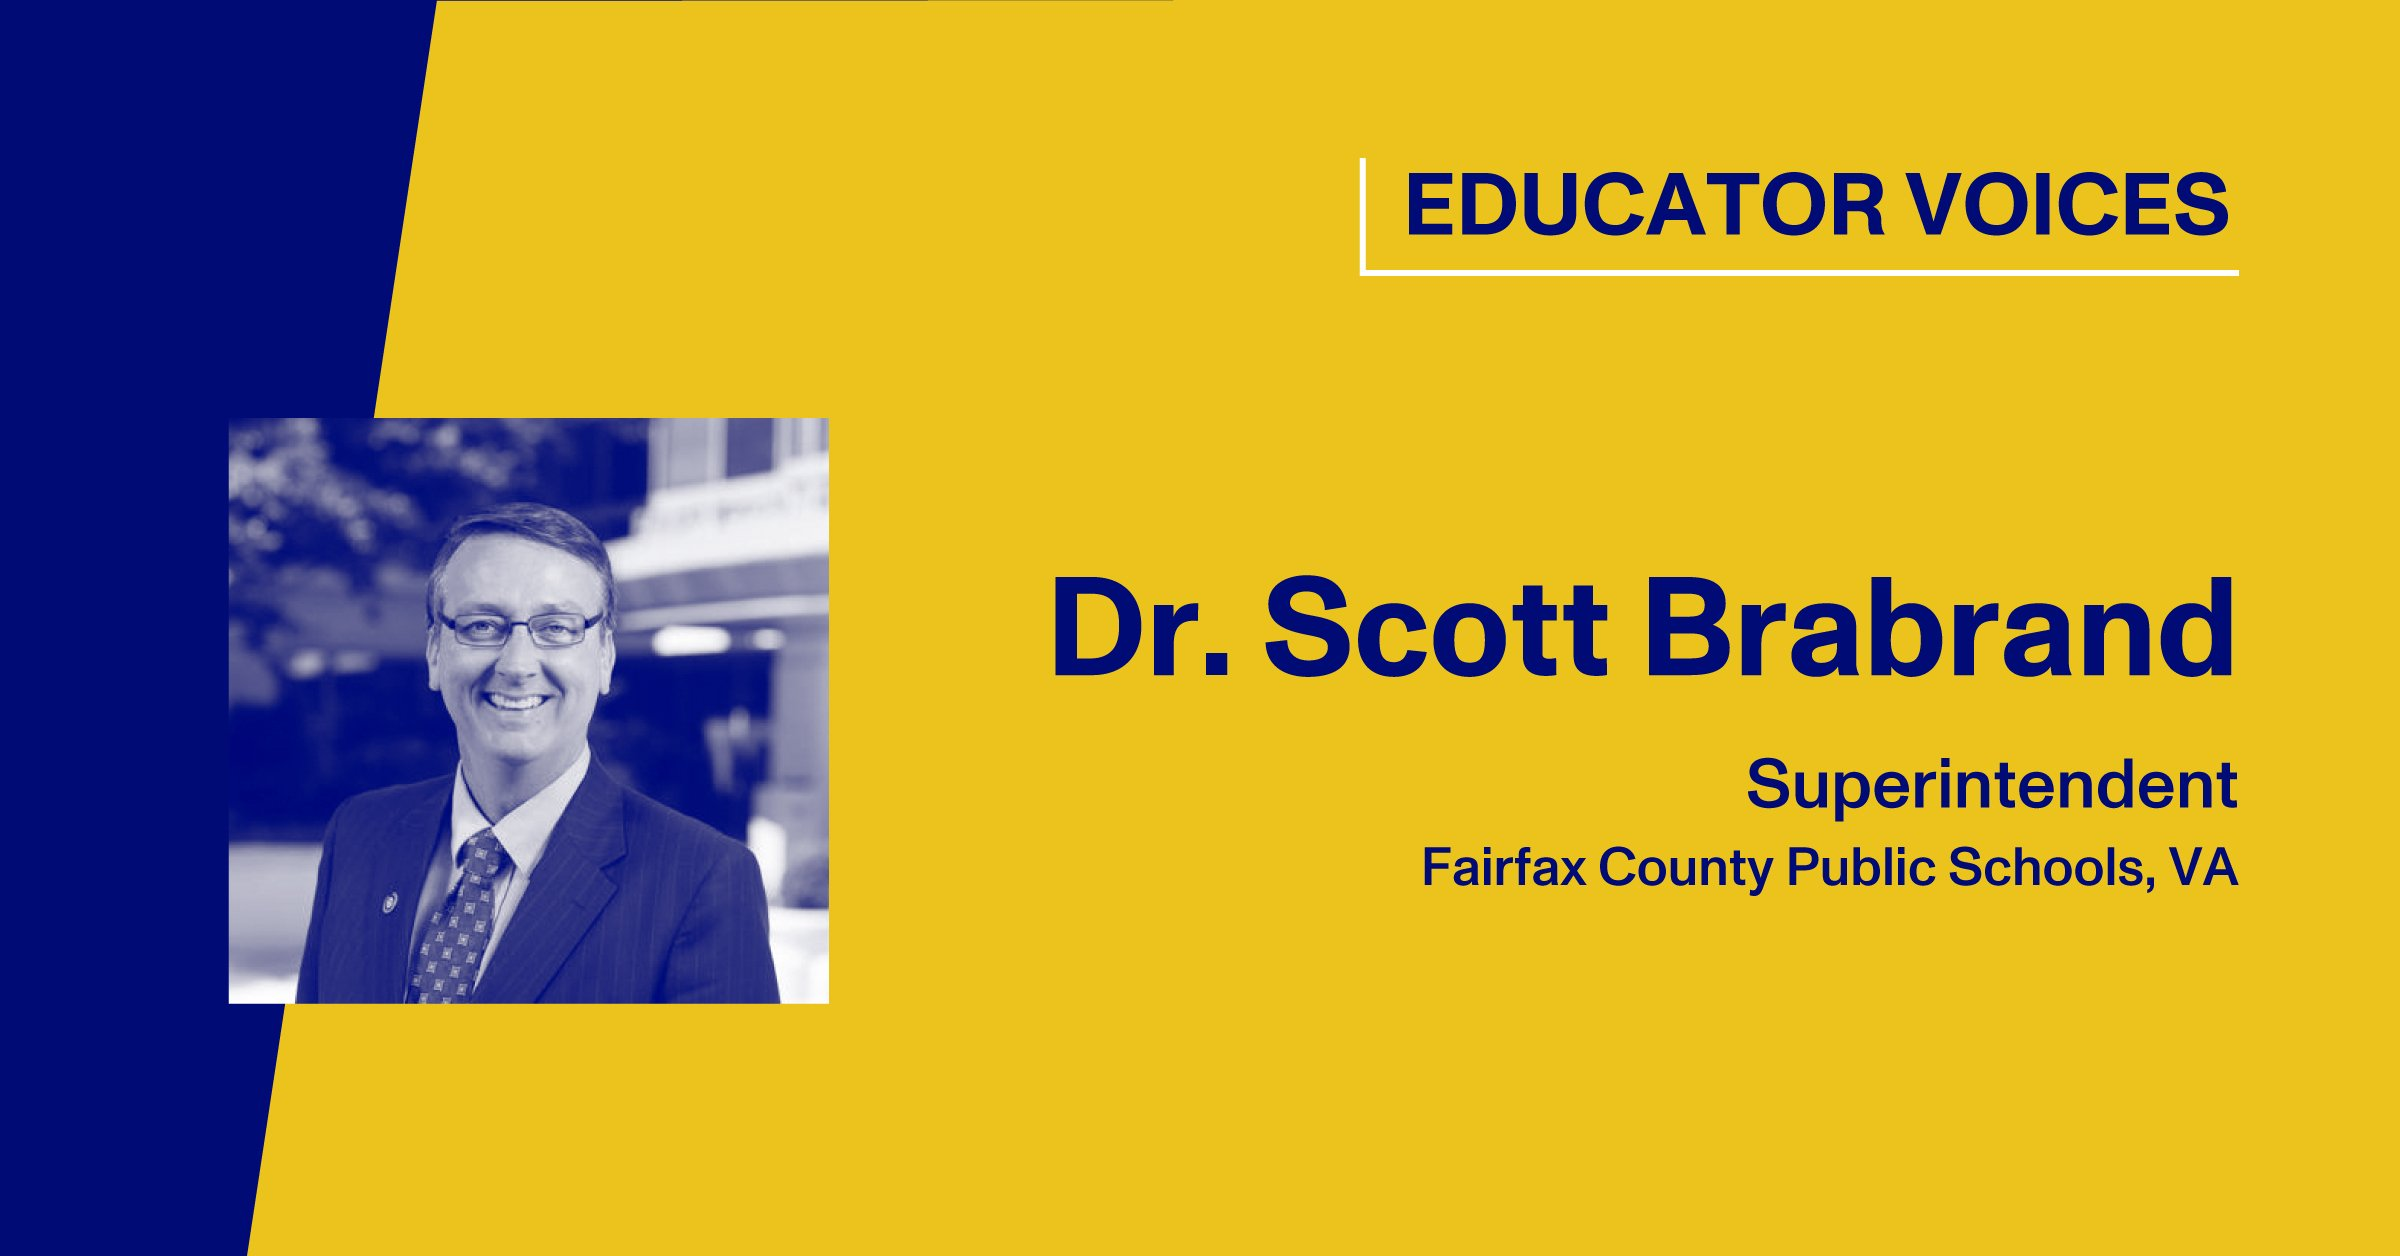 Blog Thumbnail with Headshot of Dr. Scott Brabrand